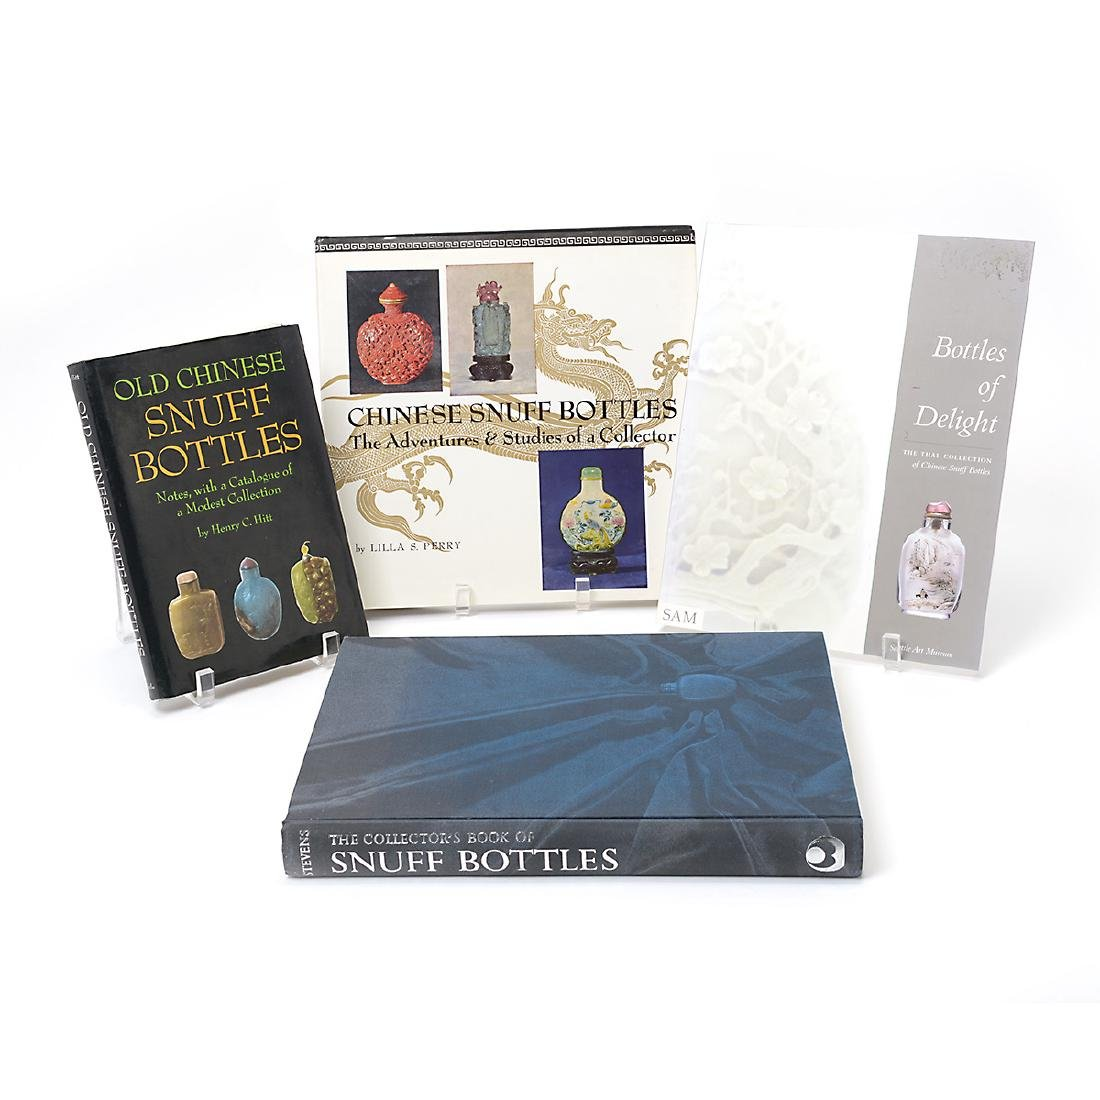 Two Snuff Bottle Display Cases & Literature on Snuff - 2